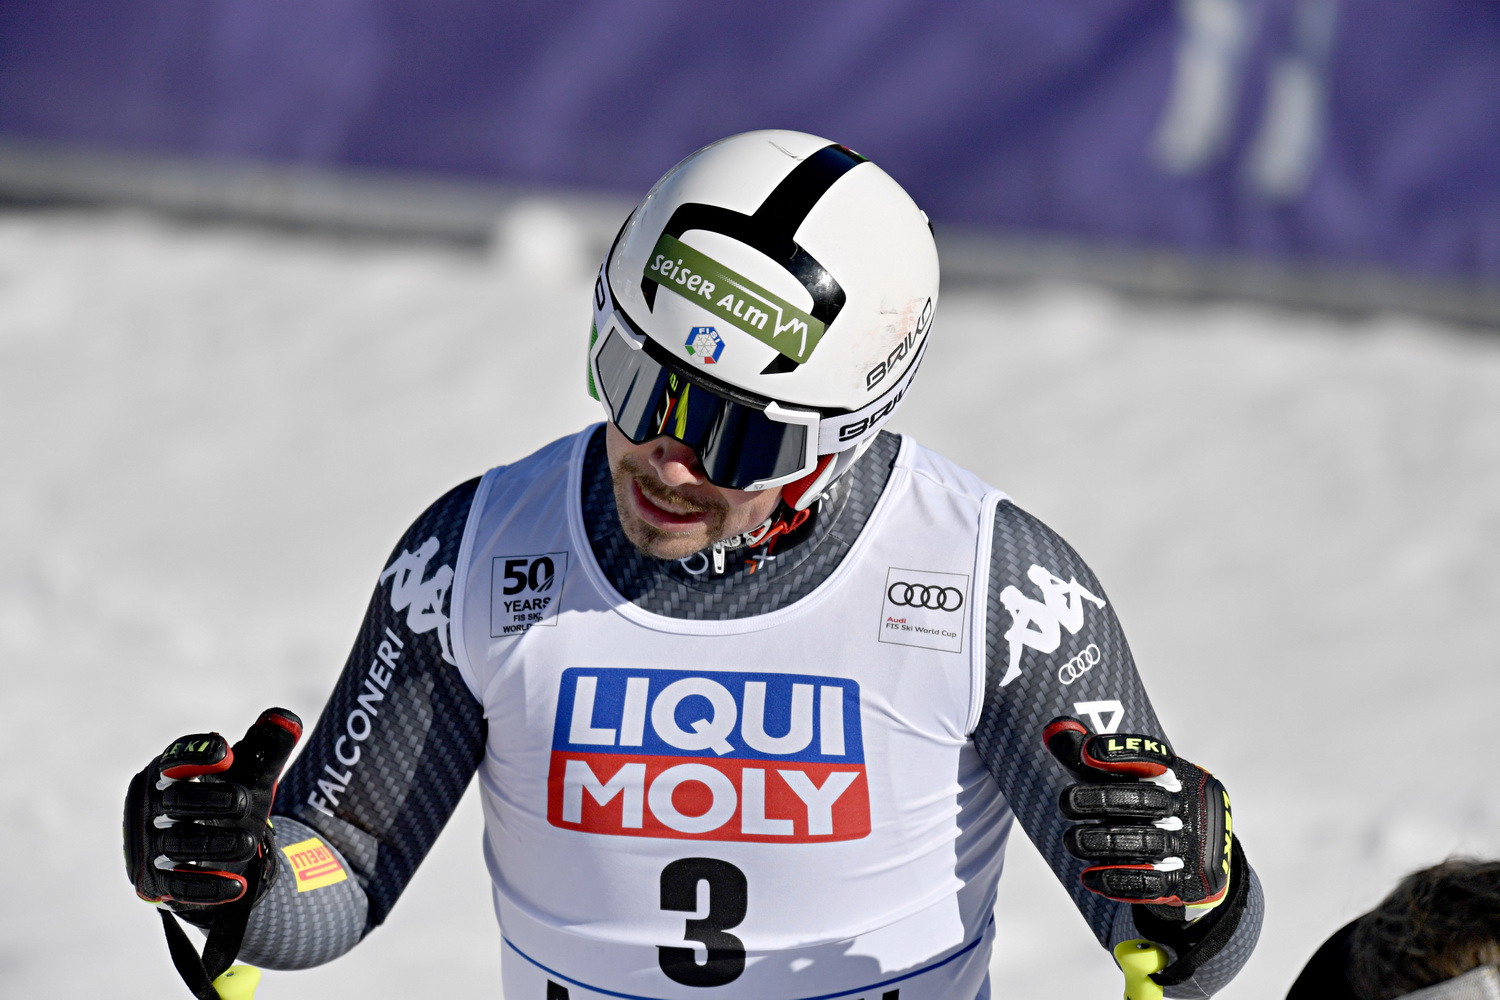 ASPEN, USA - MARCH 15: Peter Fill of Italy takes 2nd place, wins the globe in the overall standings during the Audi FIS Alpine Ski World Cup Finals Women's and Men's Downhill on March 15, 2017 in Aspen, USA (Photo by Francis Bompard/Agence Zoom)